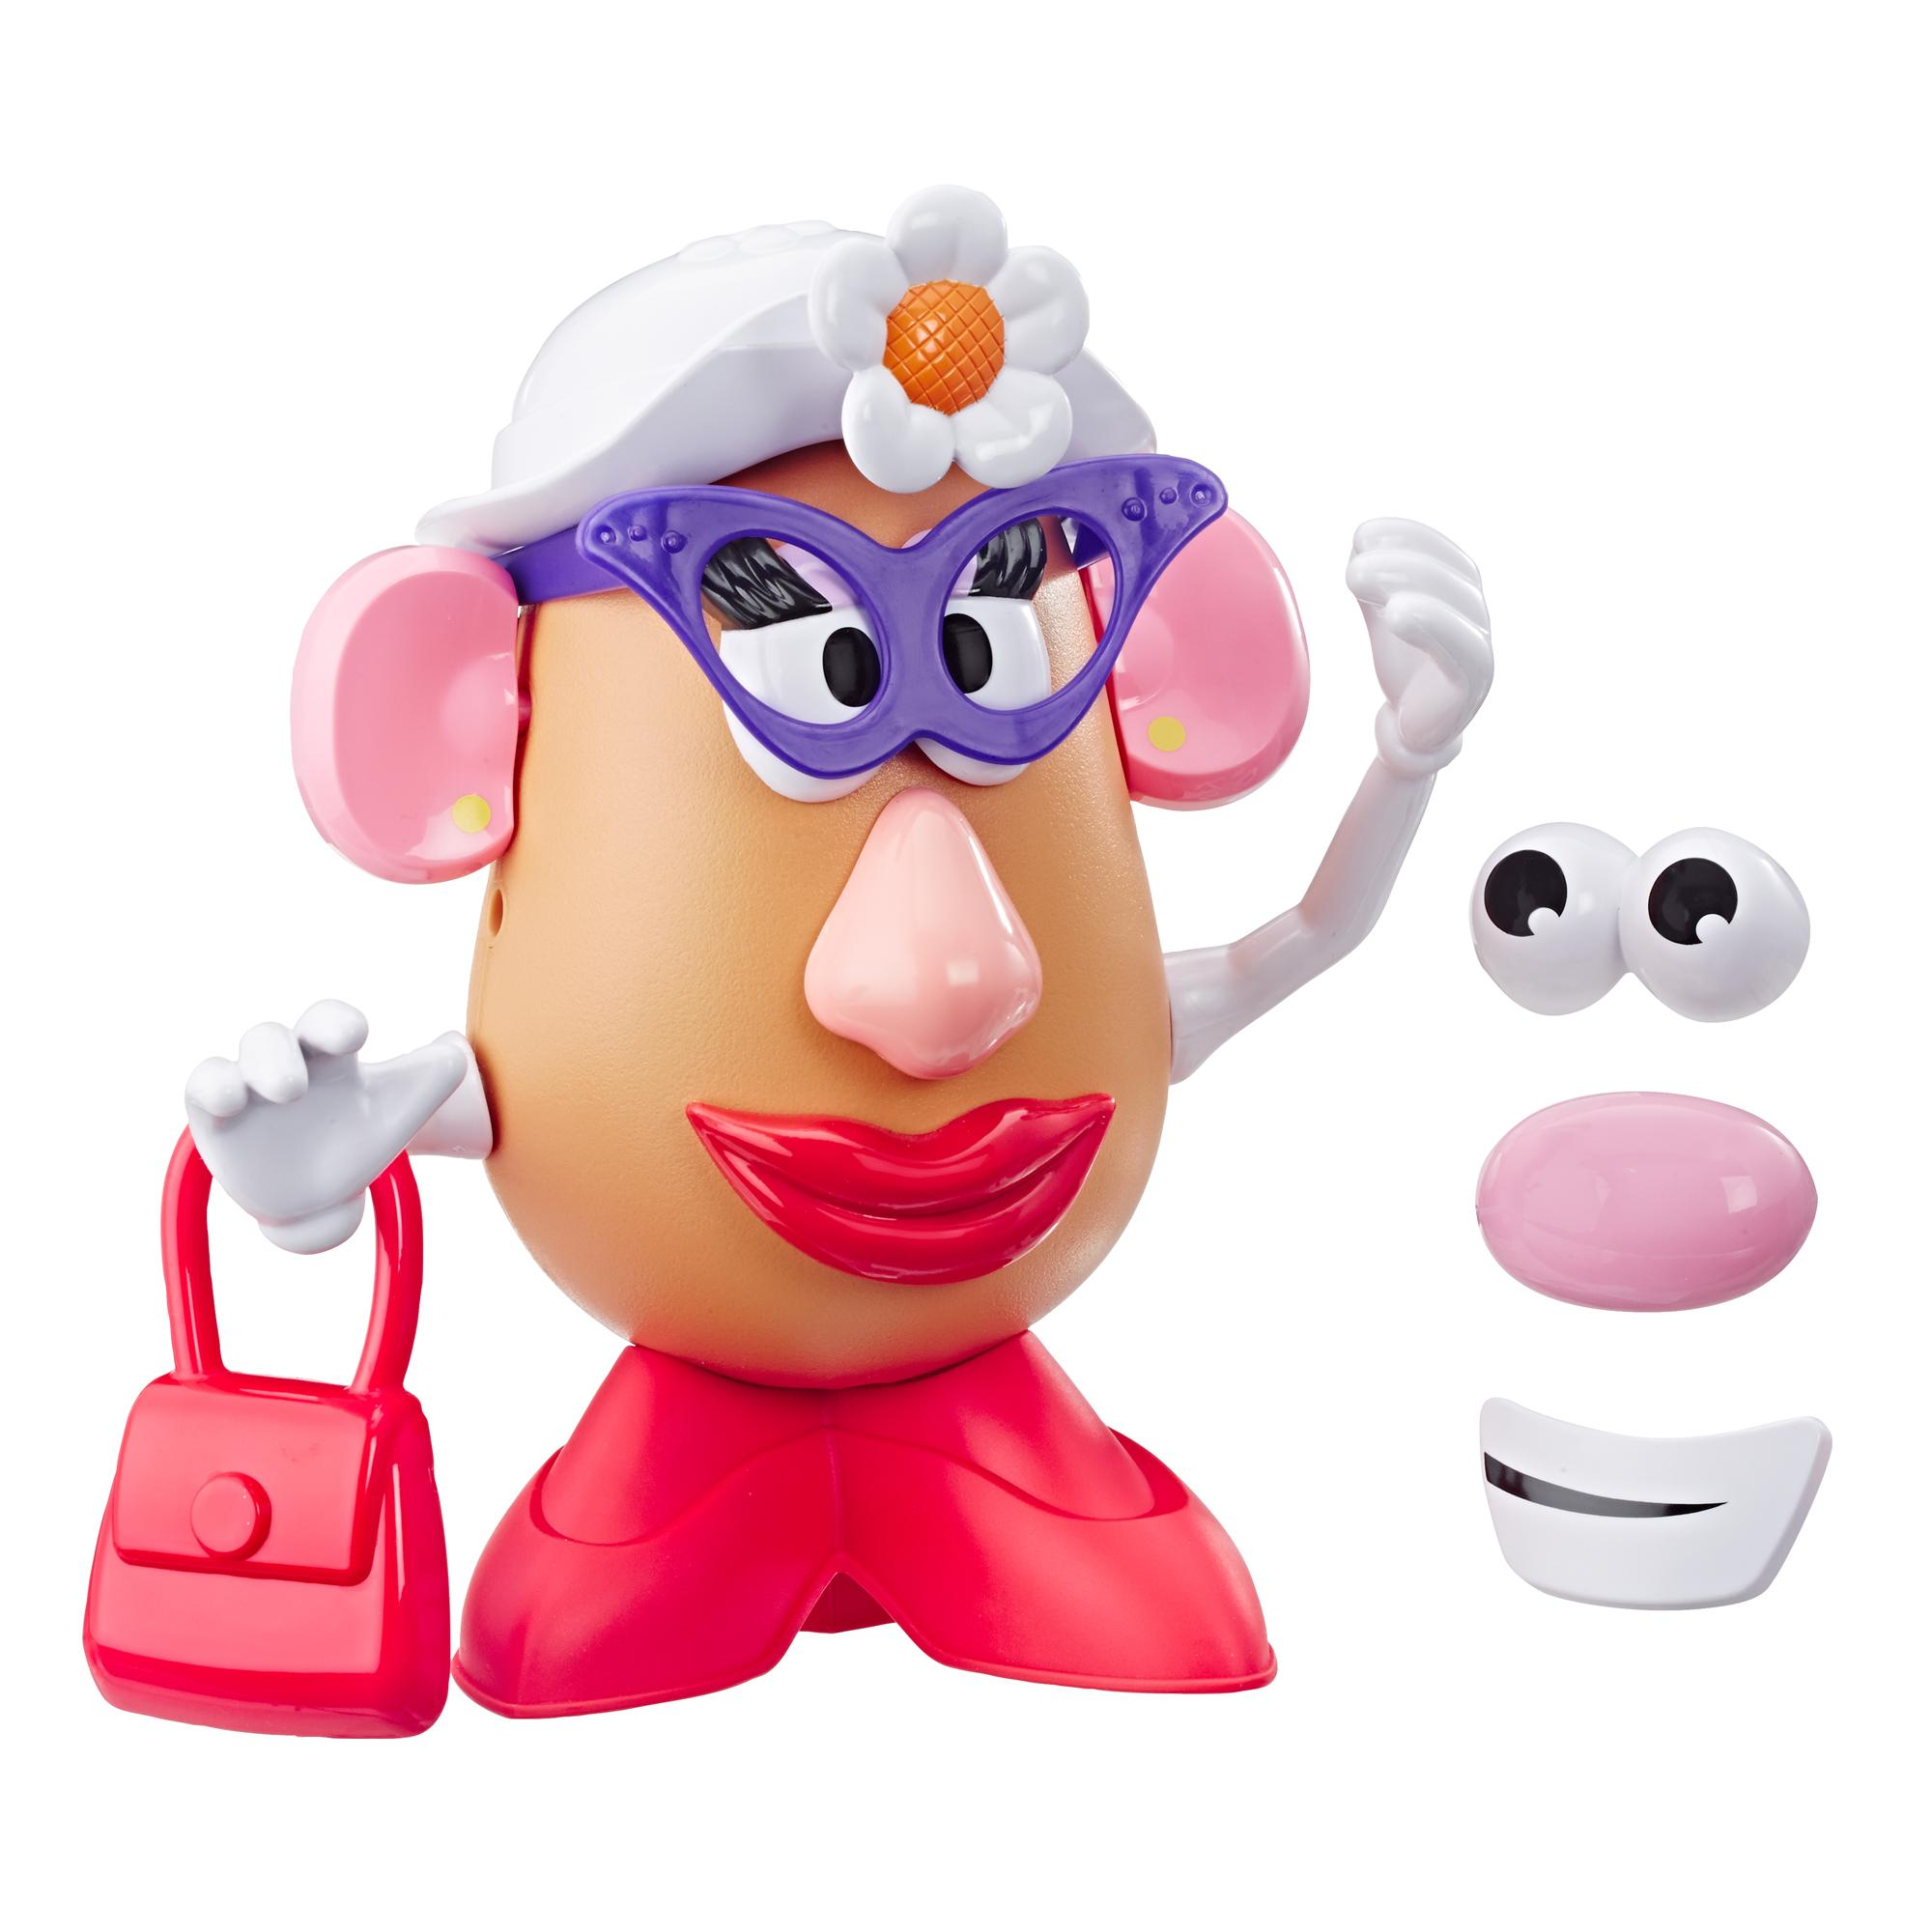 Mrs. Potato Head Disney/Pixar Toy Story 4 Classic Mrs. Potato Head Figure